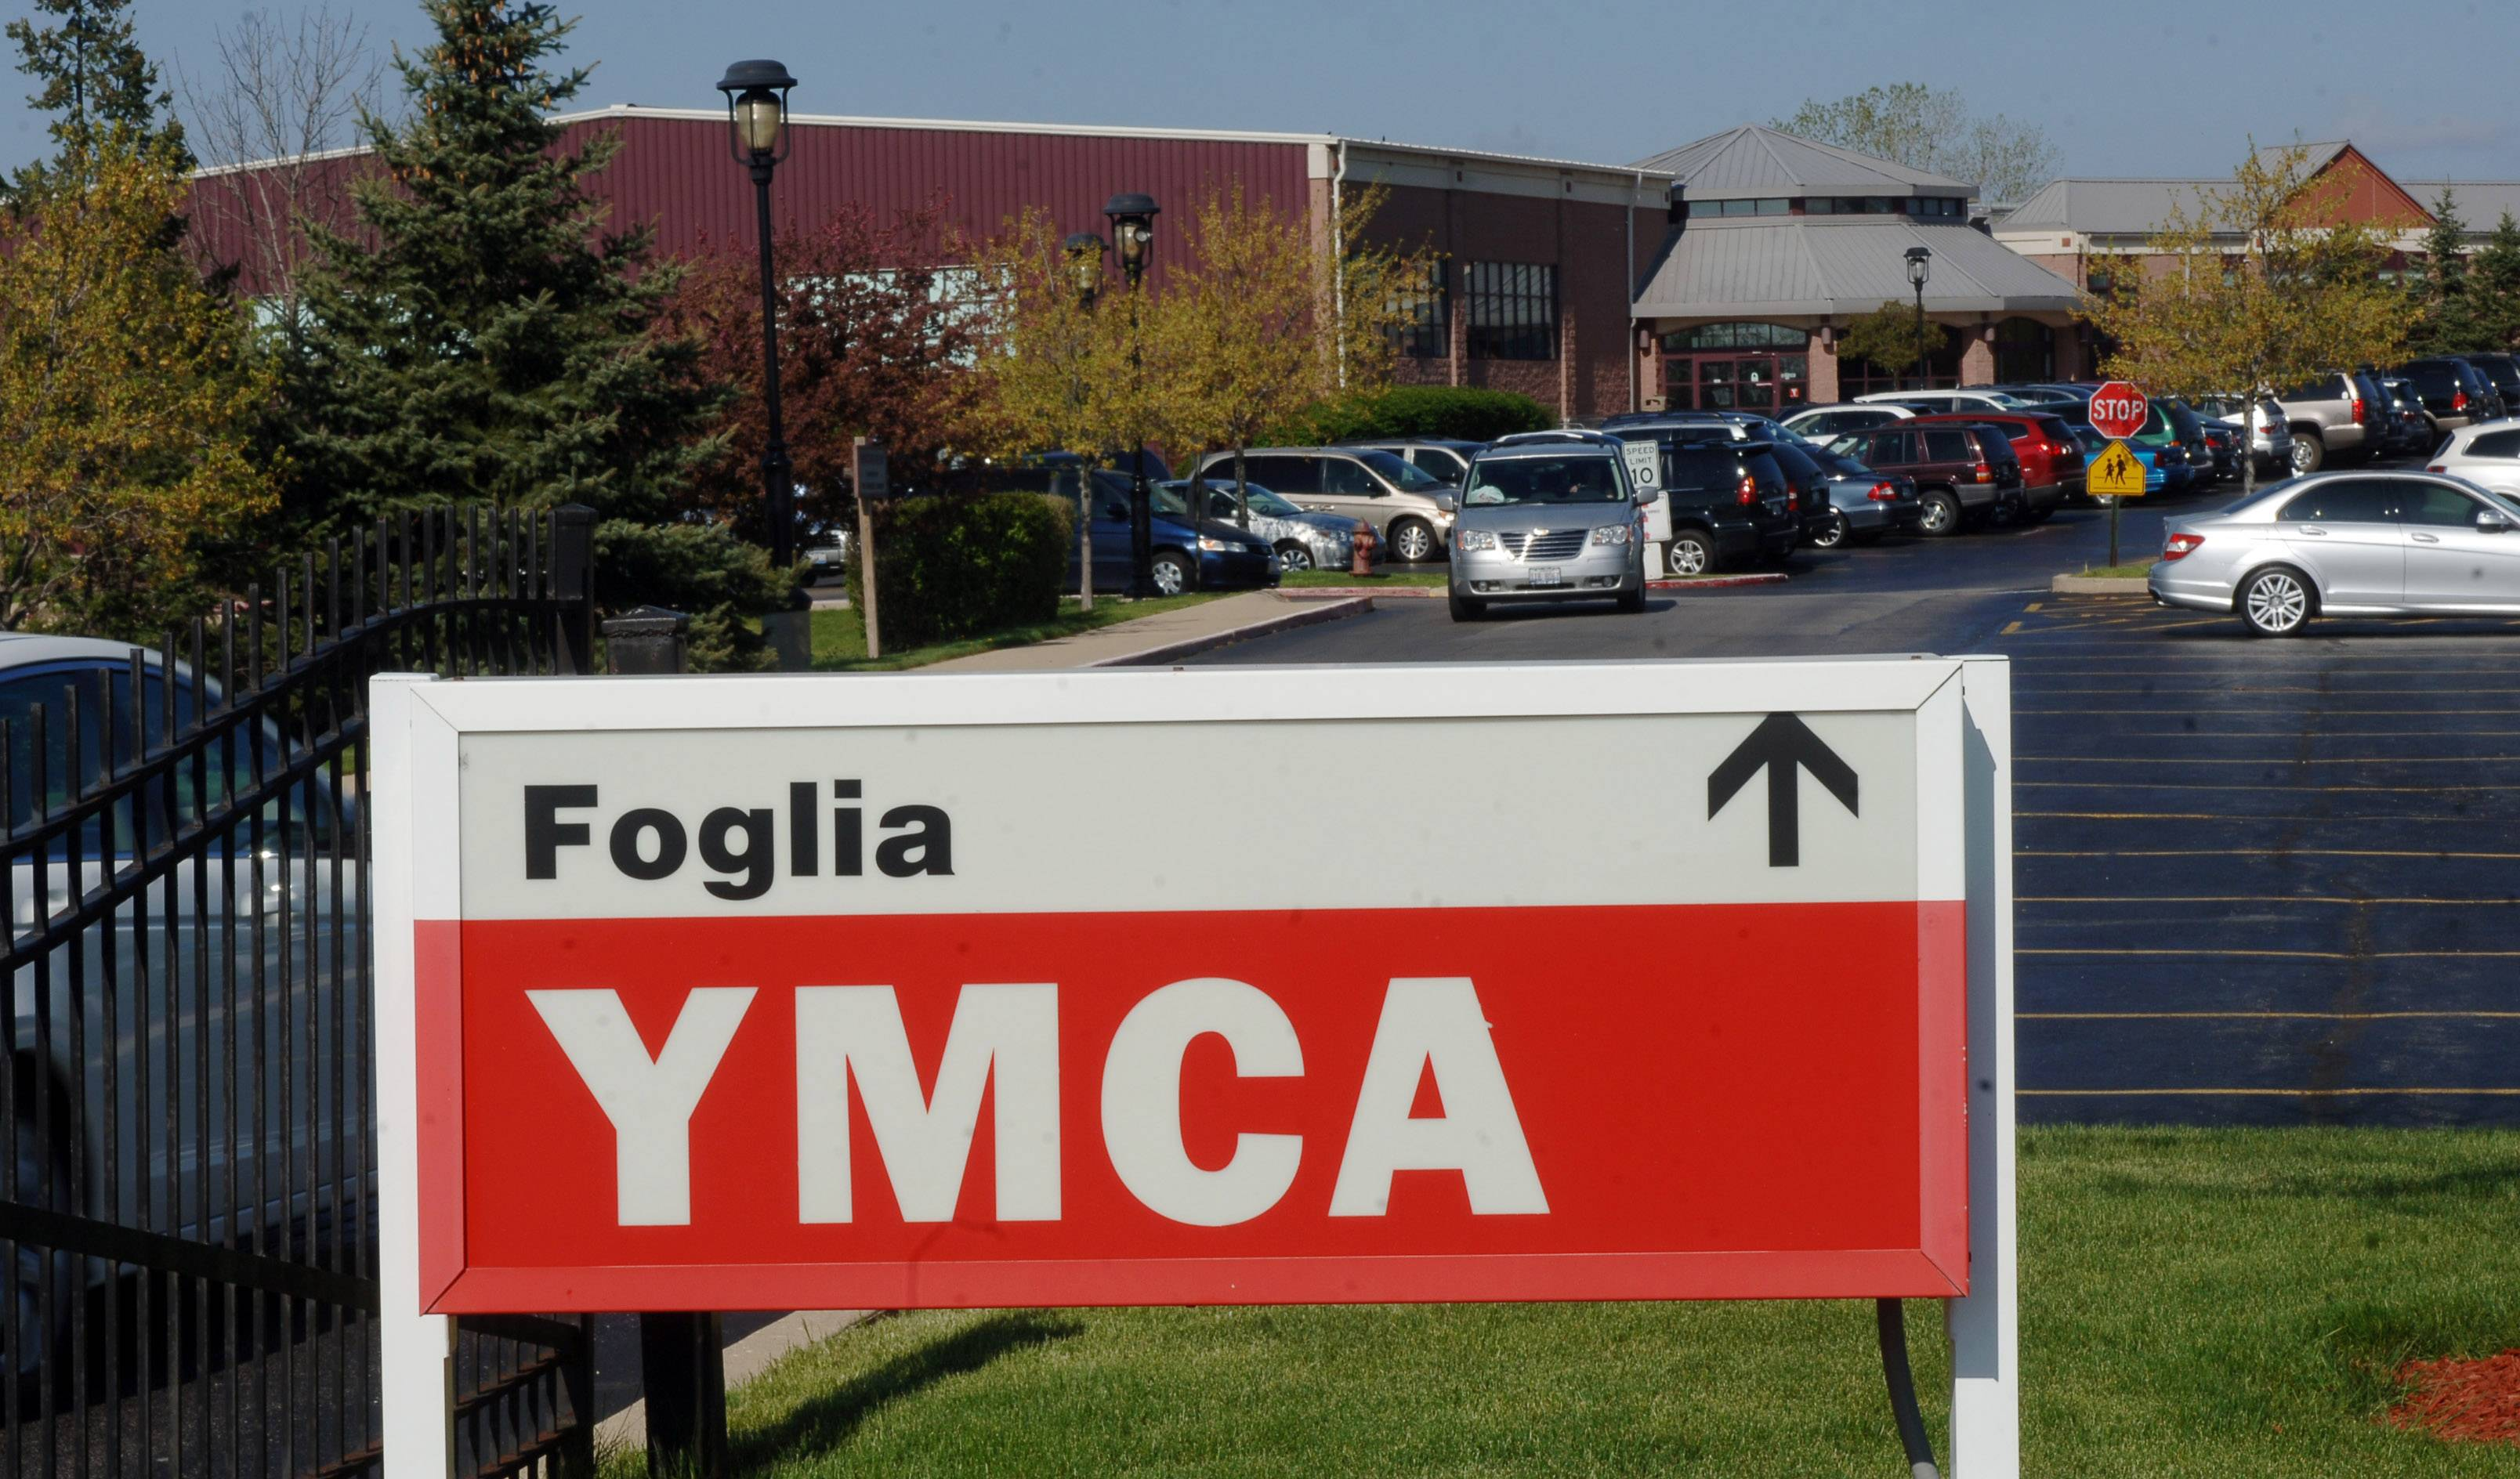 Foglia YMCA on Old McHenry Road in Lake Zurich will receive a gymnasium addition covering 8,940 square feet.